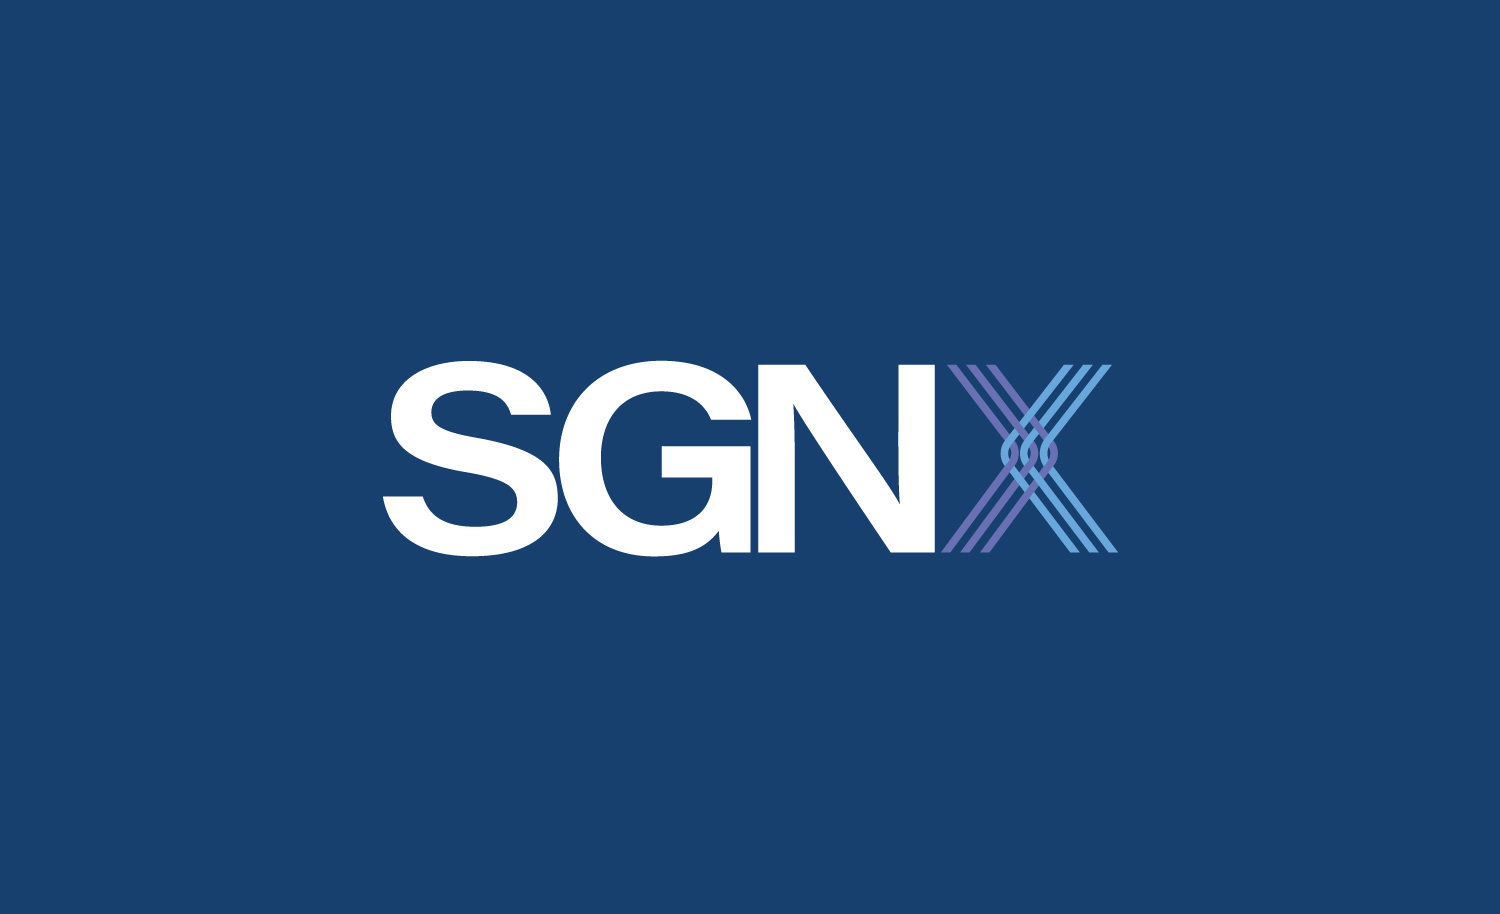 SGNX logo on blue background